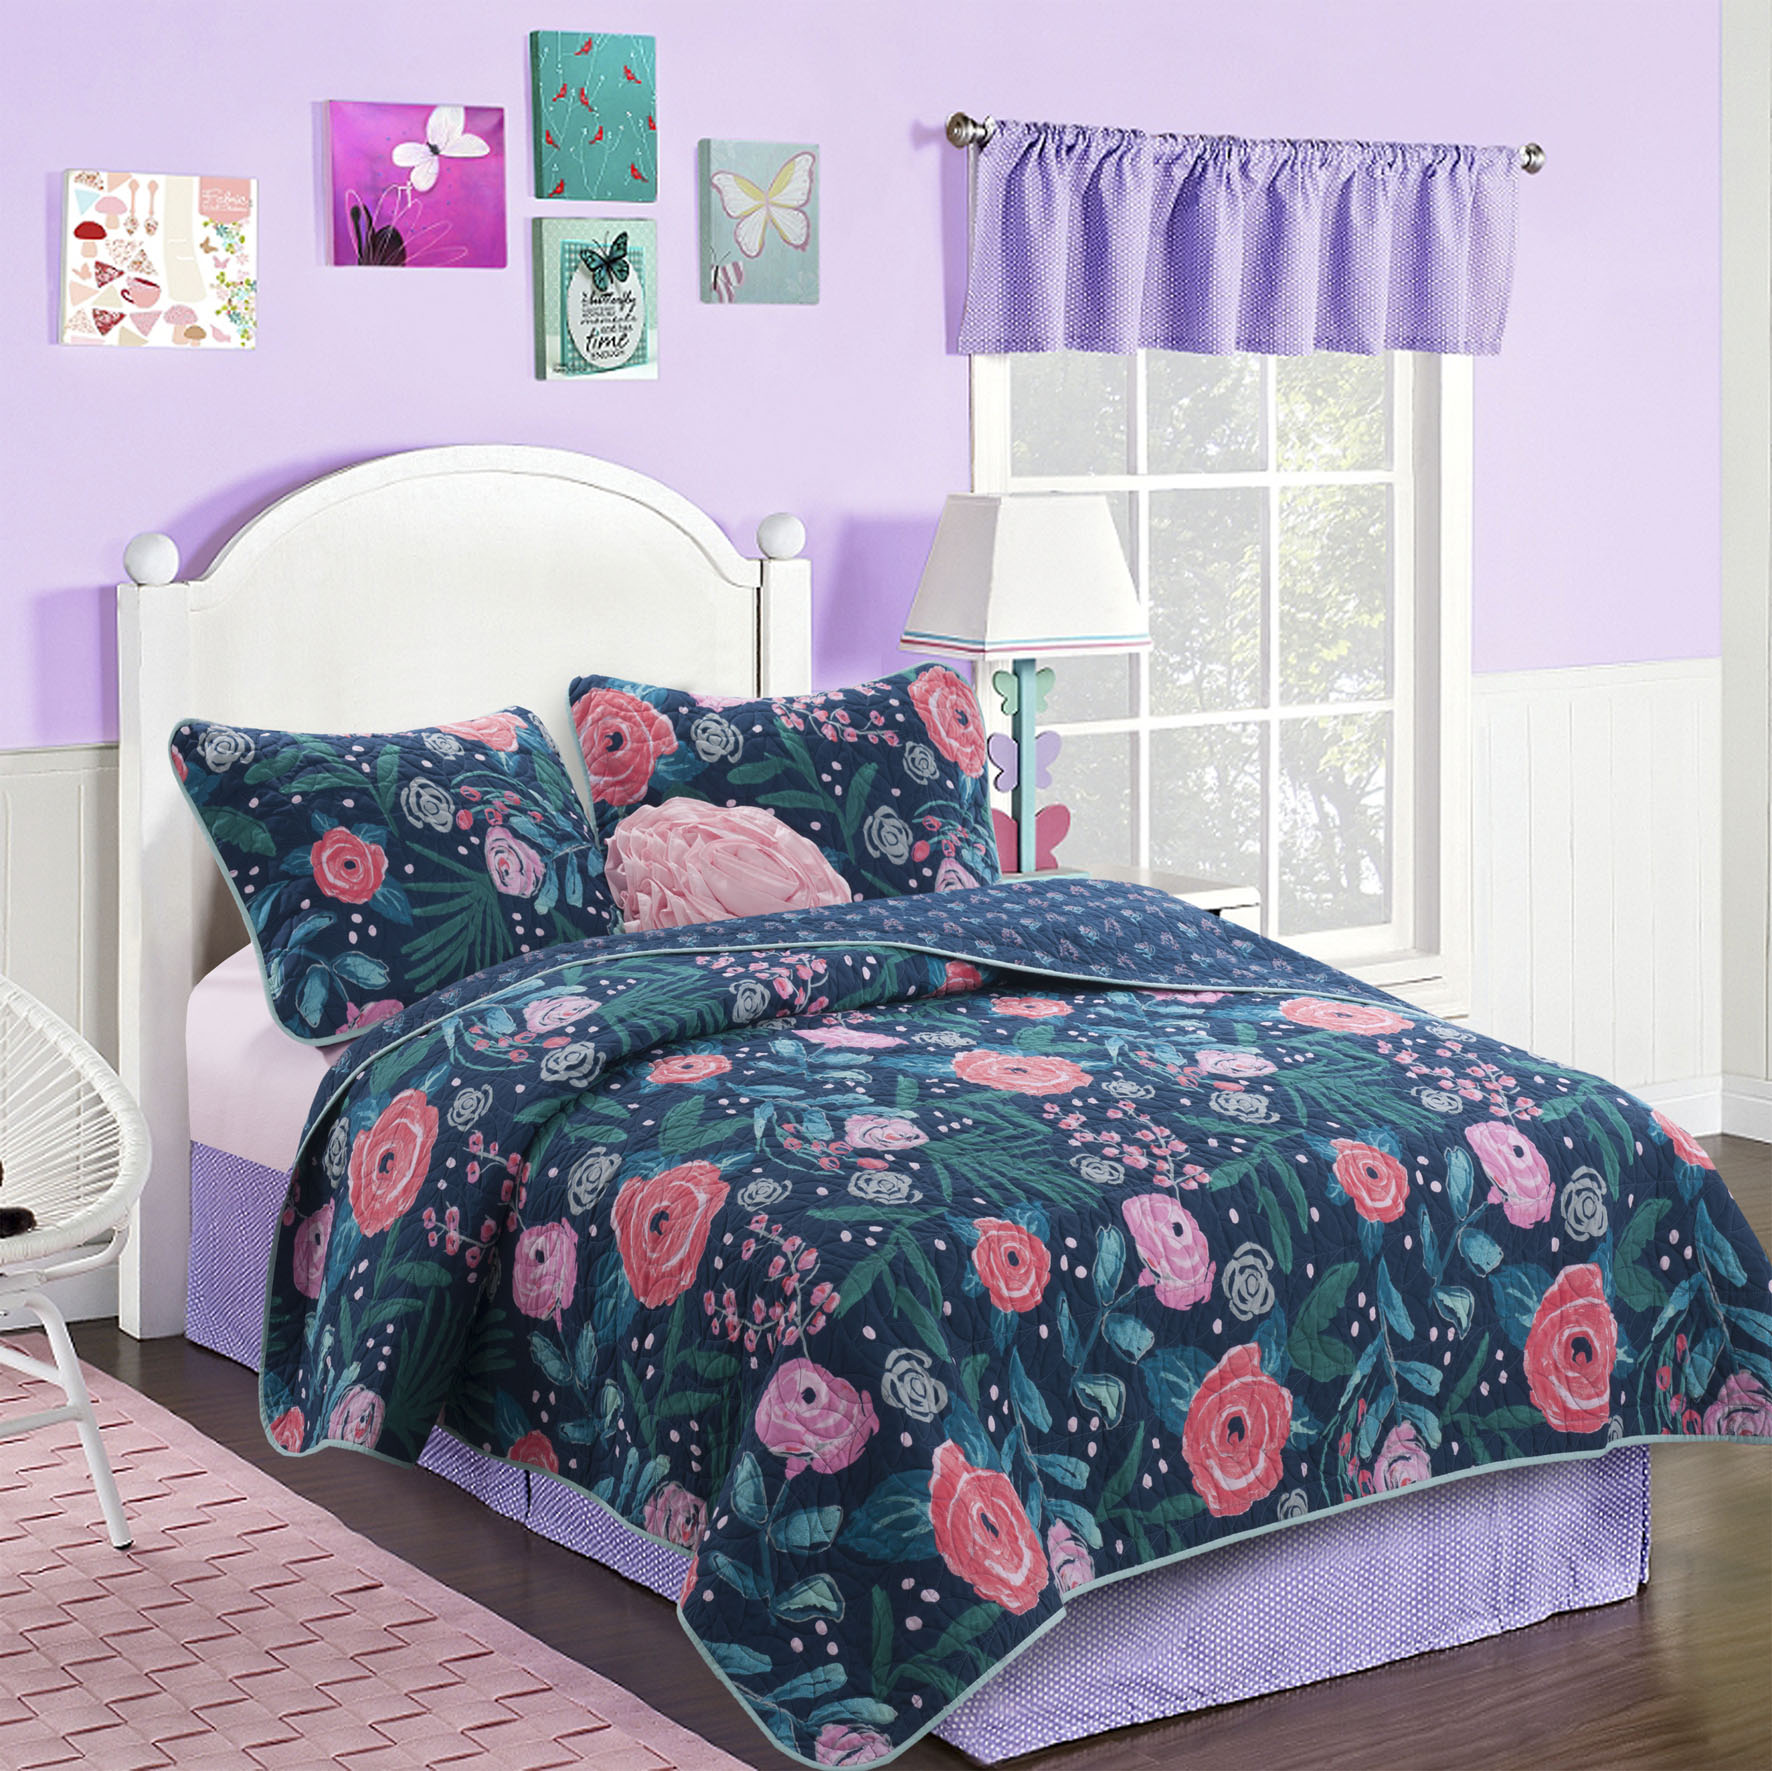 Better Homes and Gardens Kids Rose Garden Quilt Set